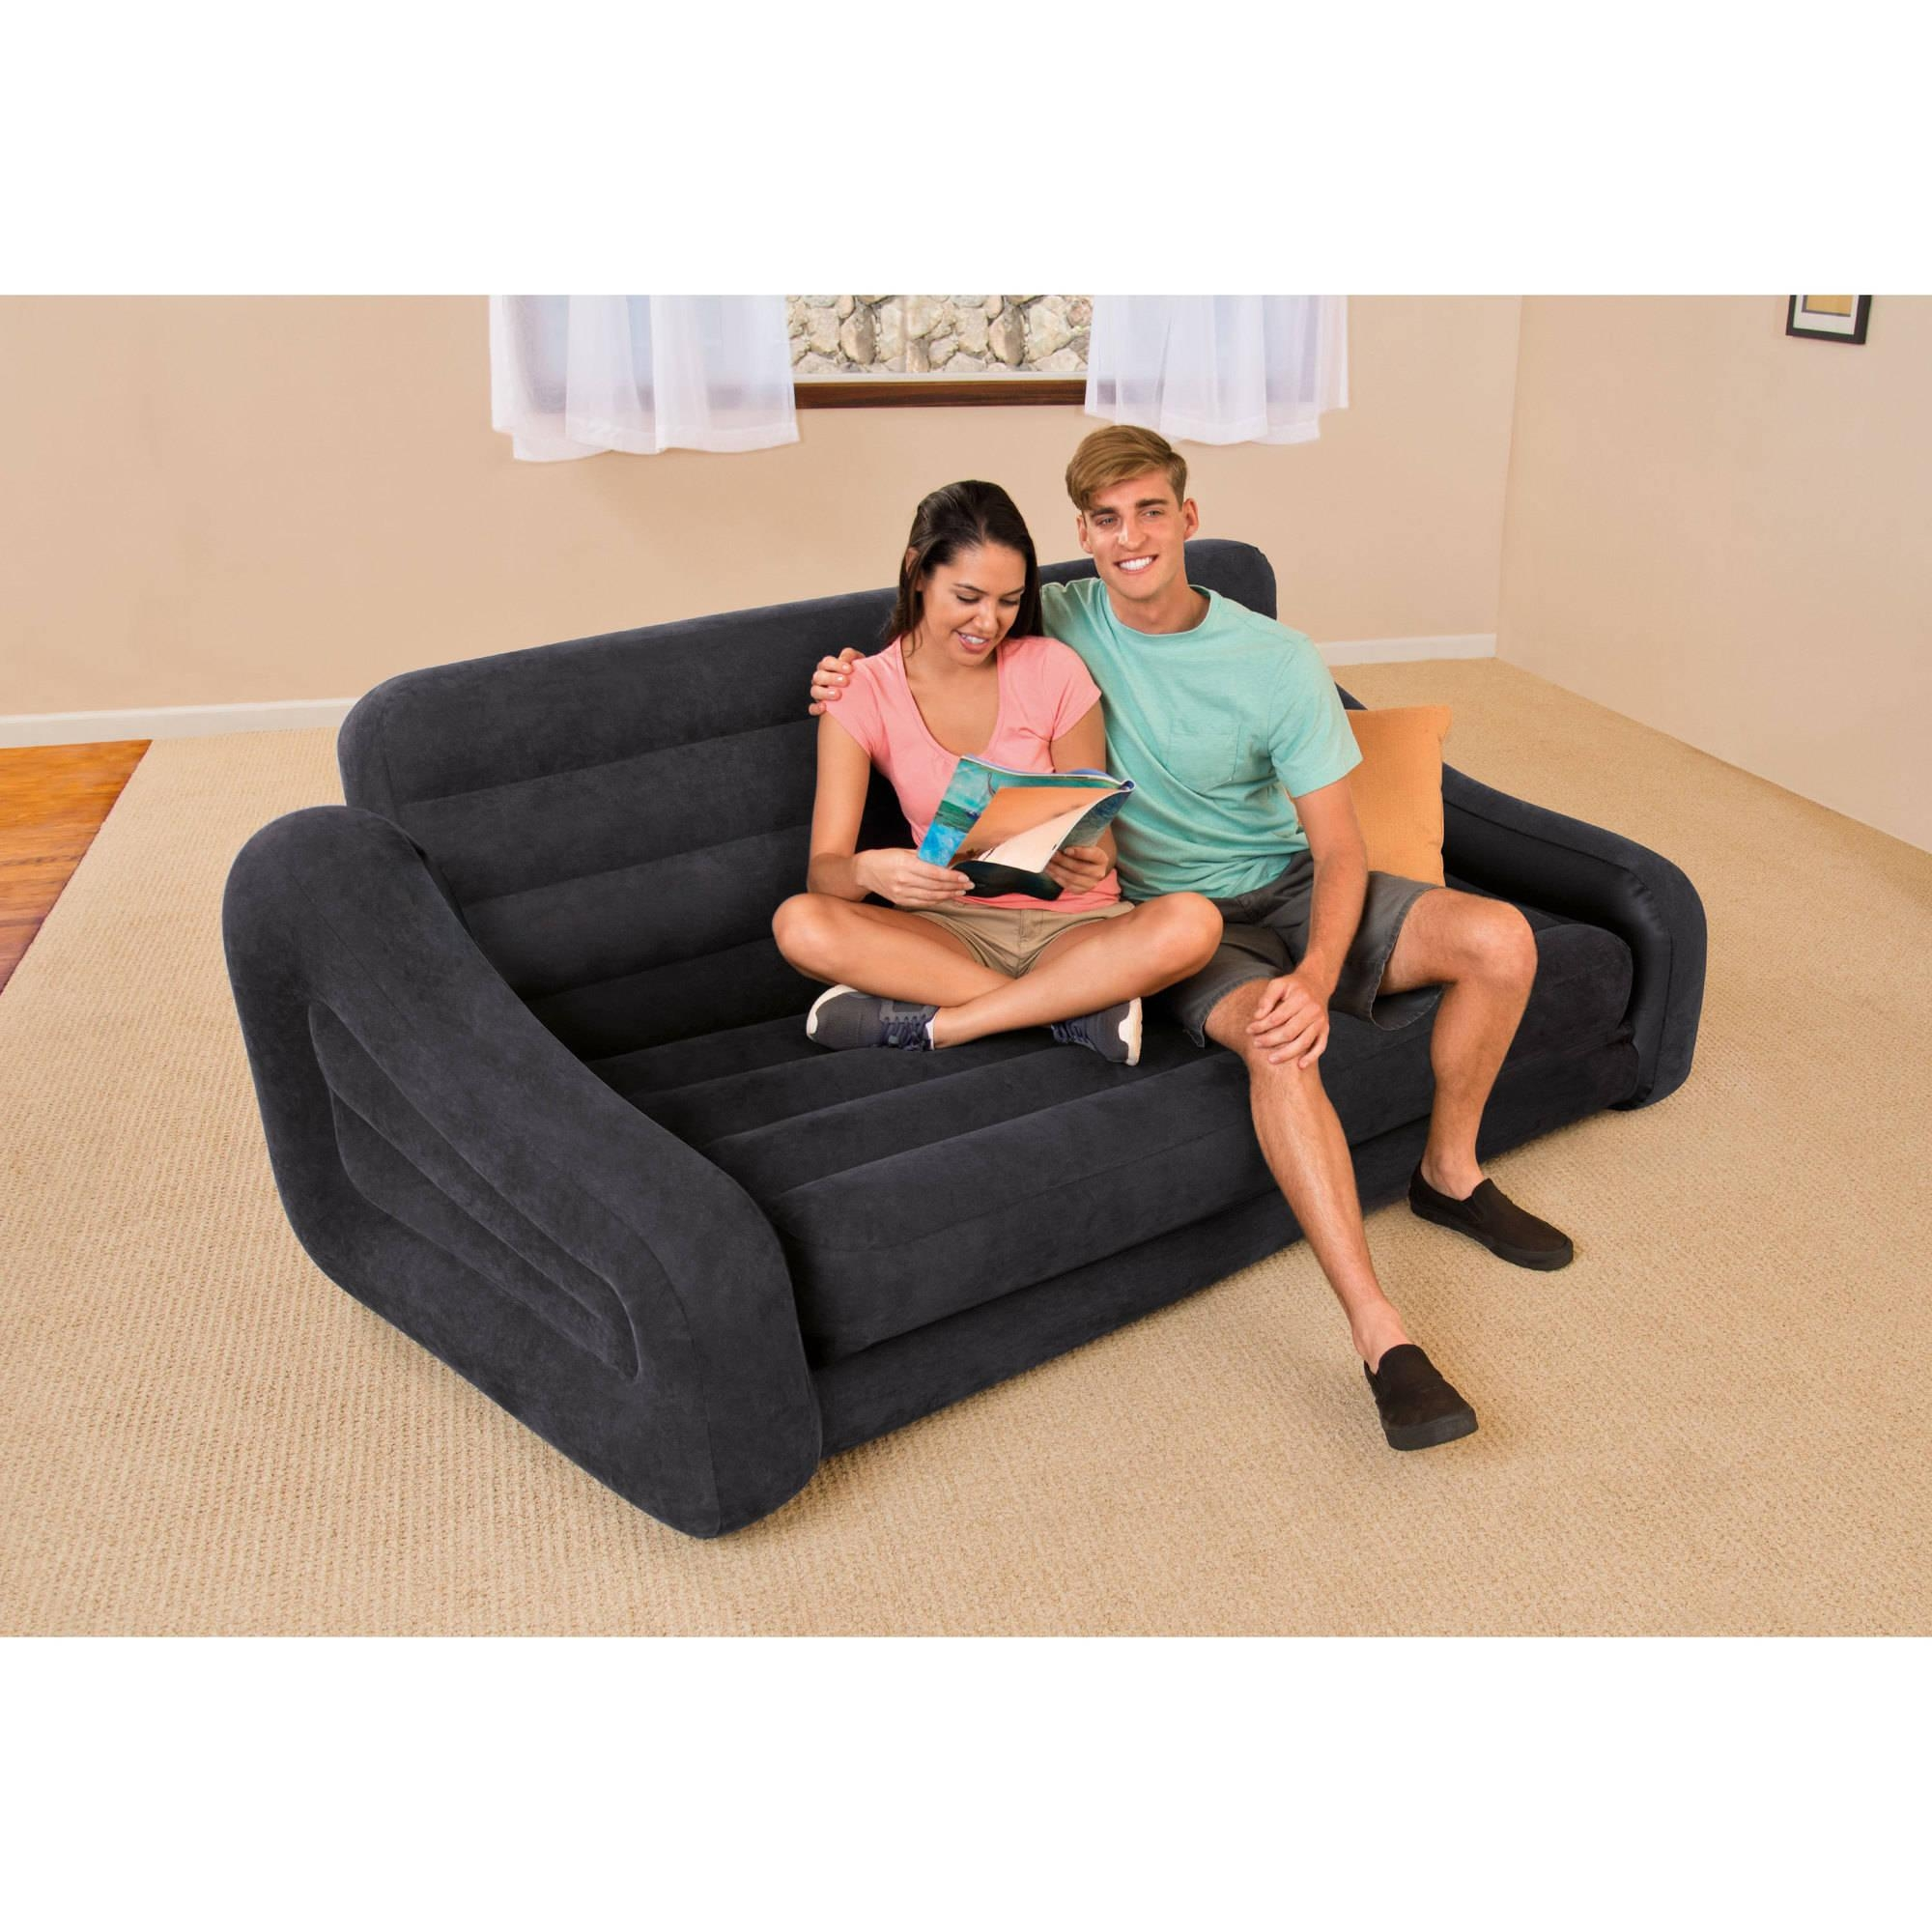 Intex Queen Inflatable Pull Out Sofa Bed – Walmart With Regard To Intex Pull Out Chairs (View 8 of 20)